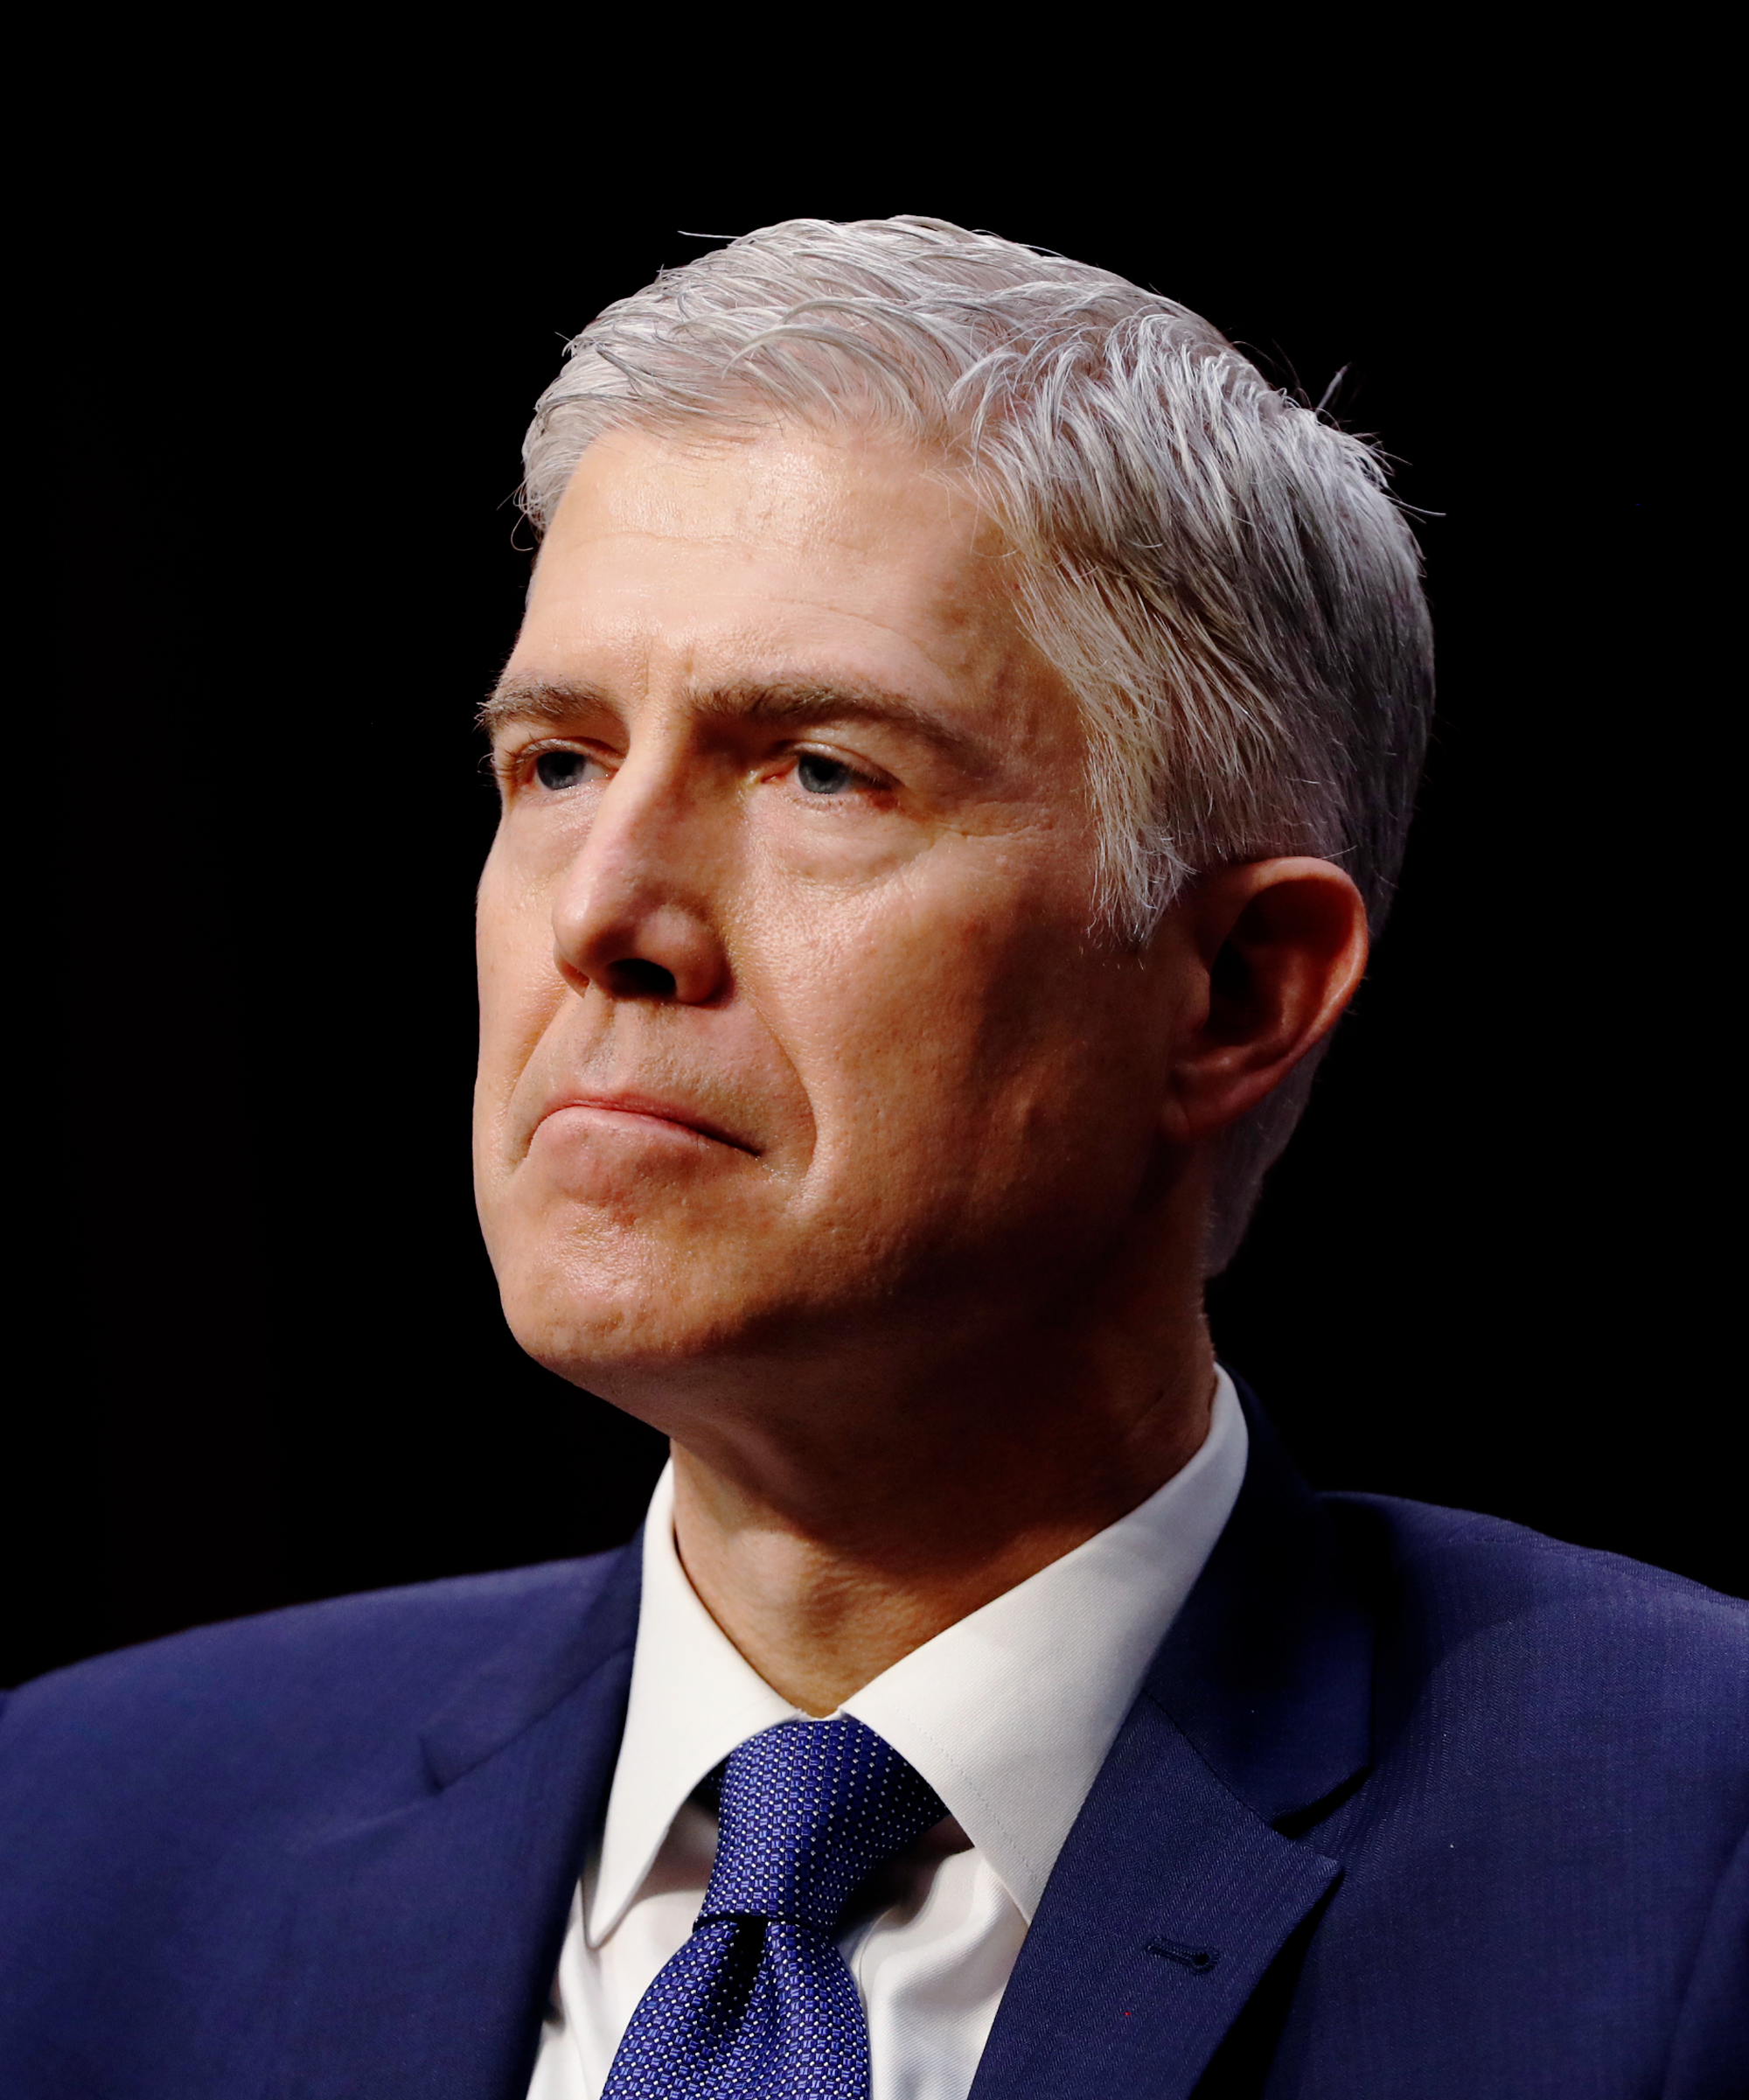 US Senate confirms Gorsuch as 9th SC judge